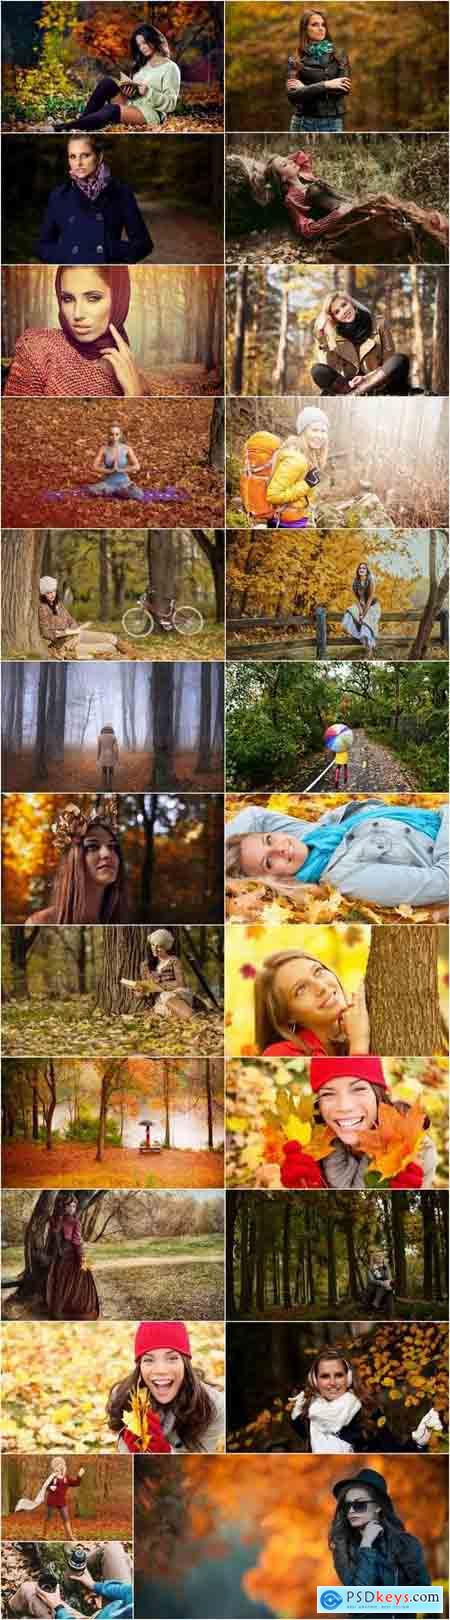 Woman girl in the autumn forest yellow leaf 25 HQ Jpeg